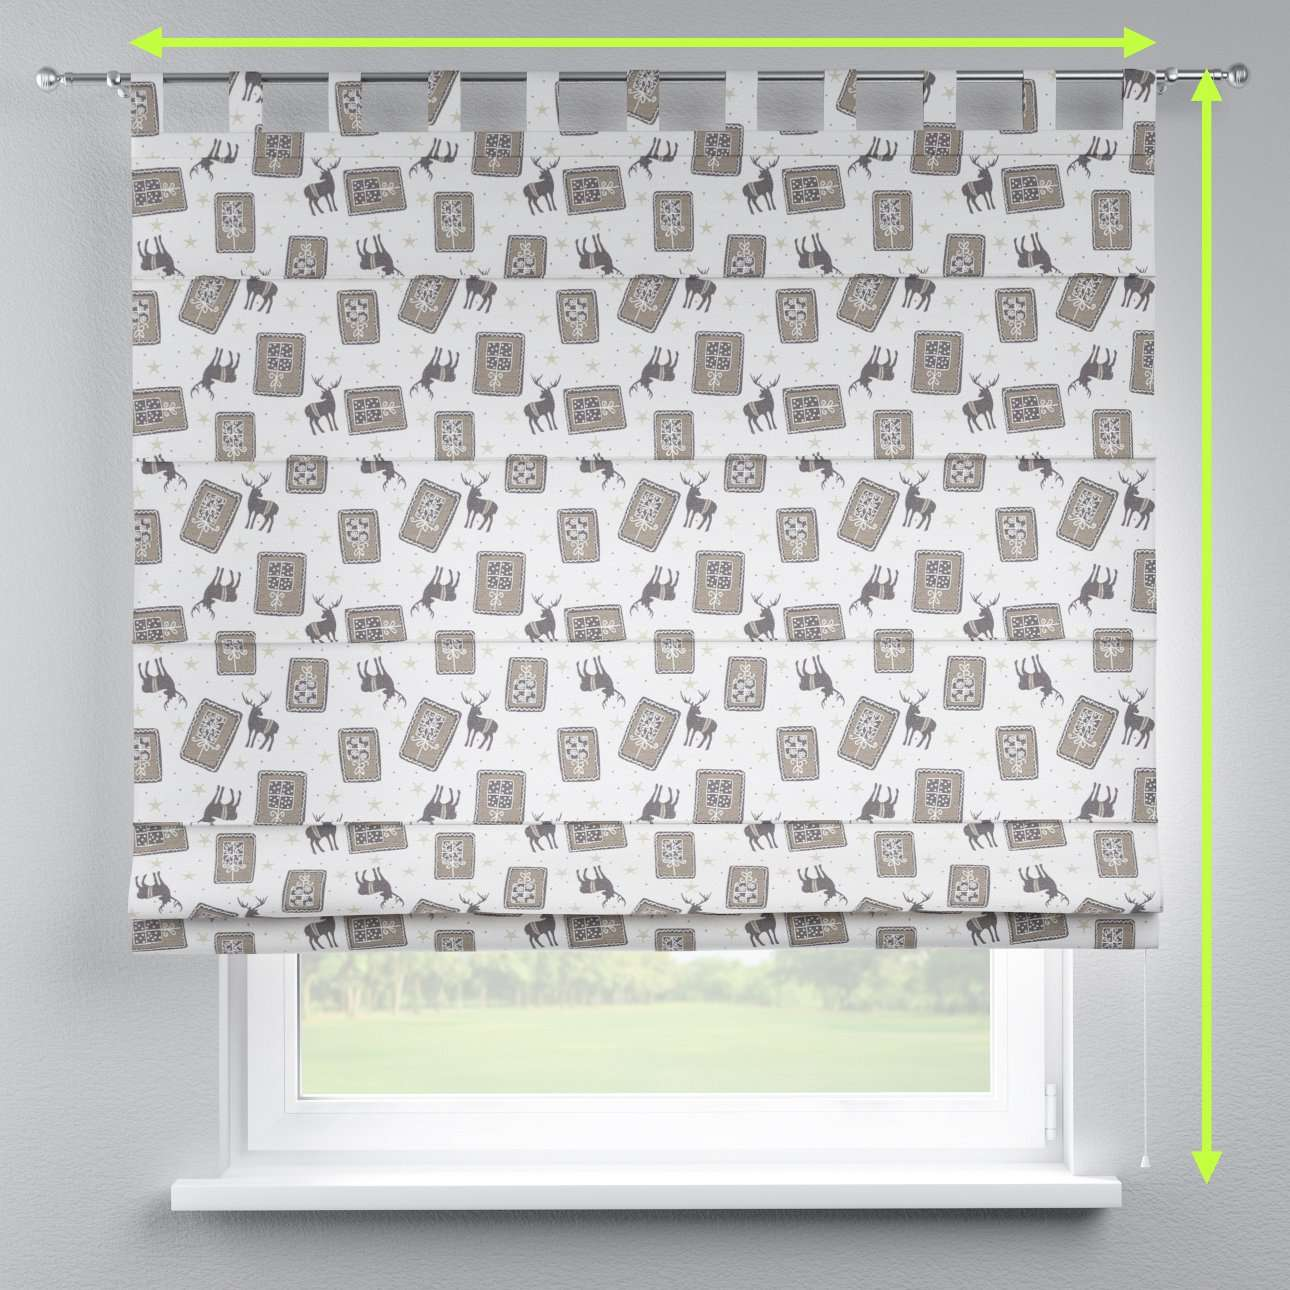 Verona tab top roman blind in collection Nordic, fabric: 630-10